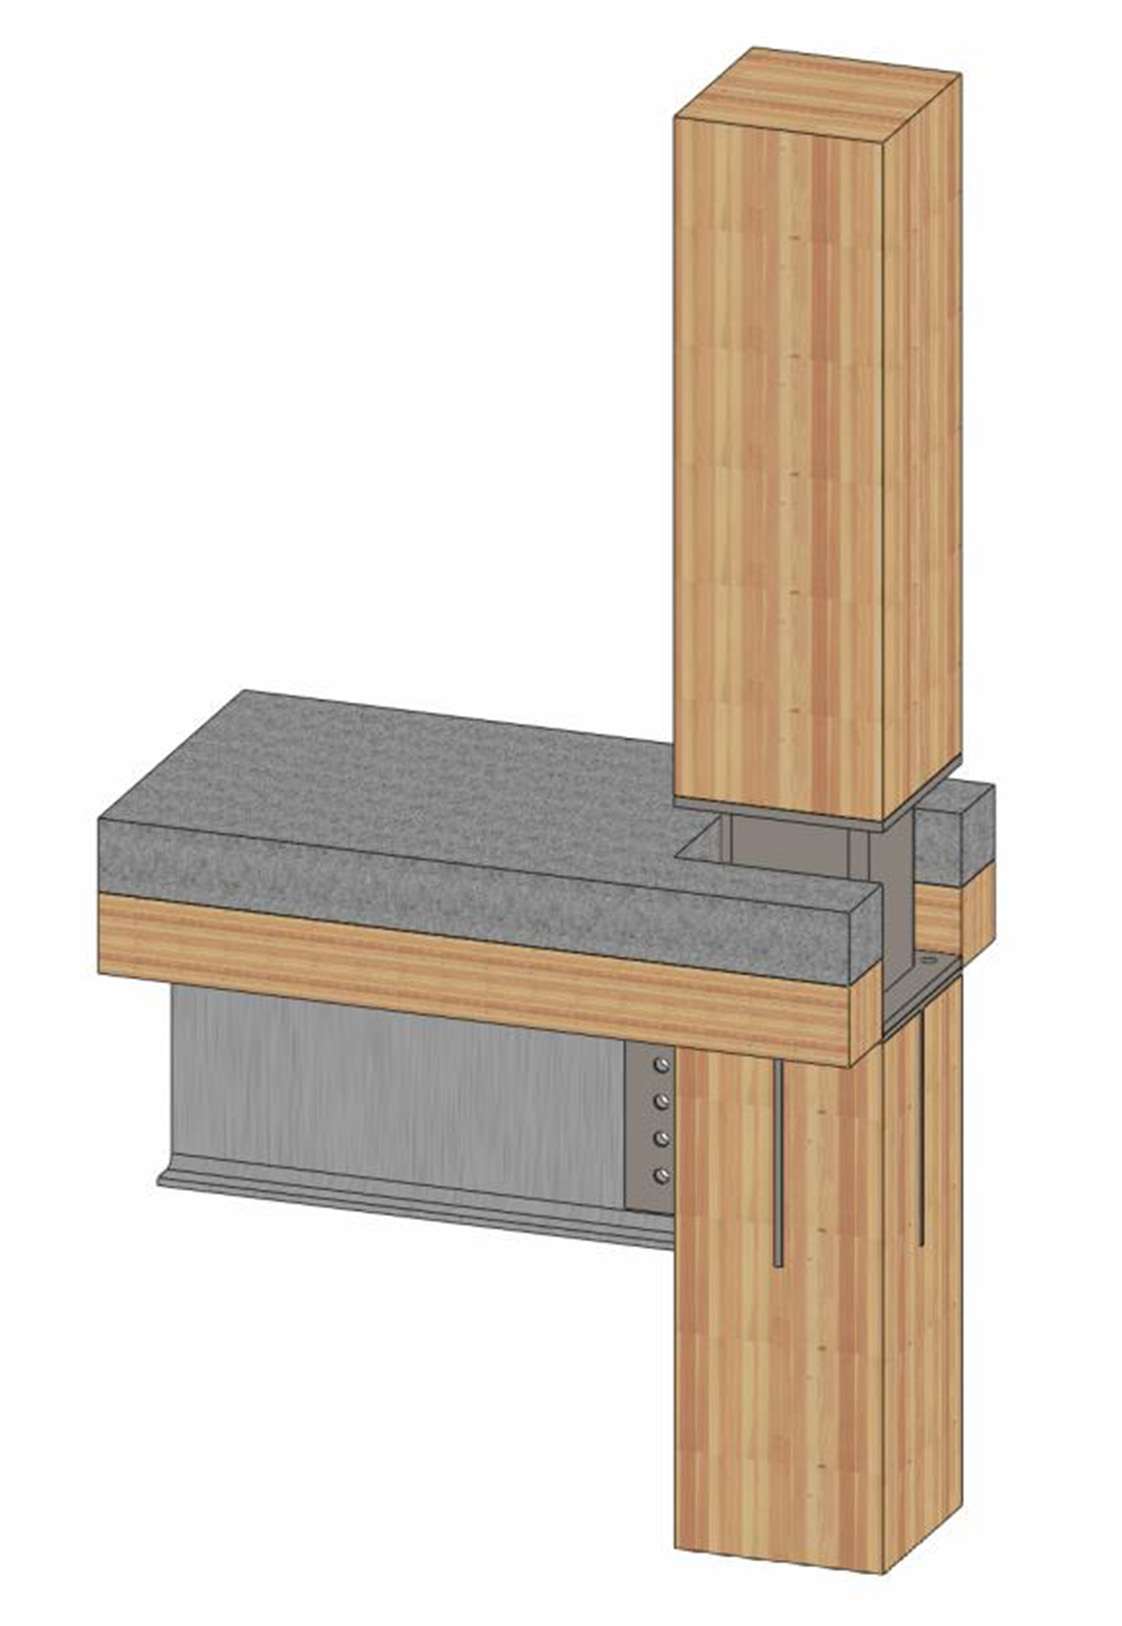 Cross-Laminated Timber SOLIDWORKS Model by Holmes Structures